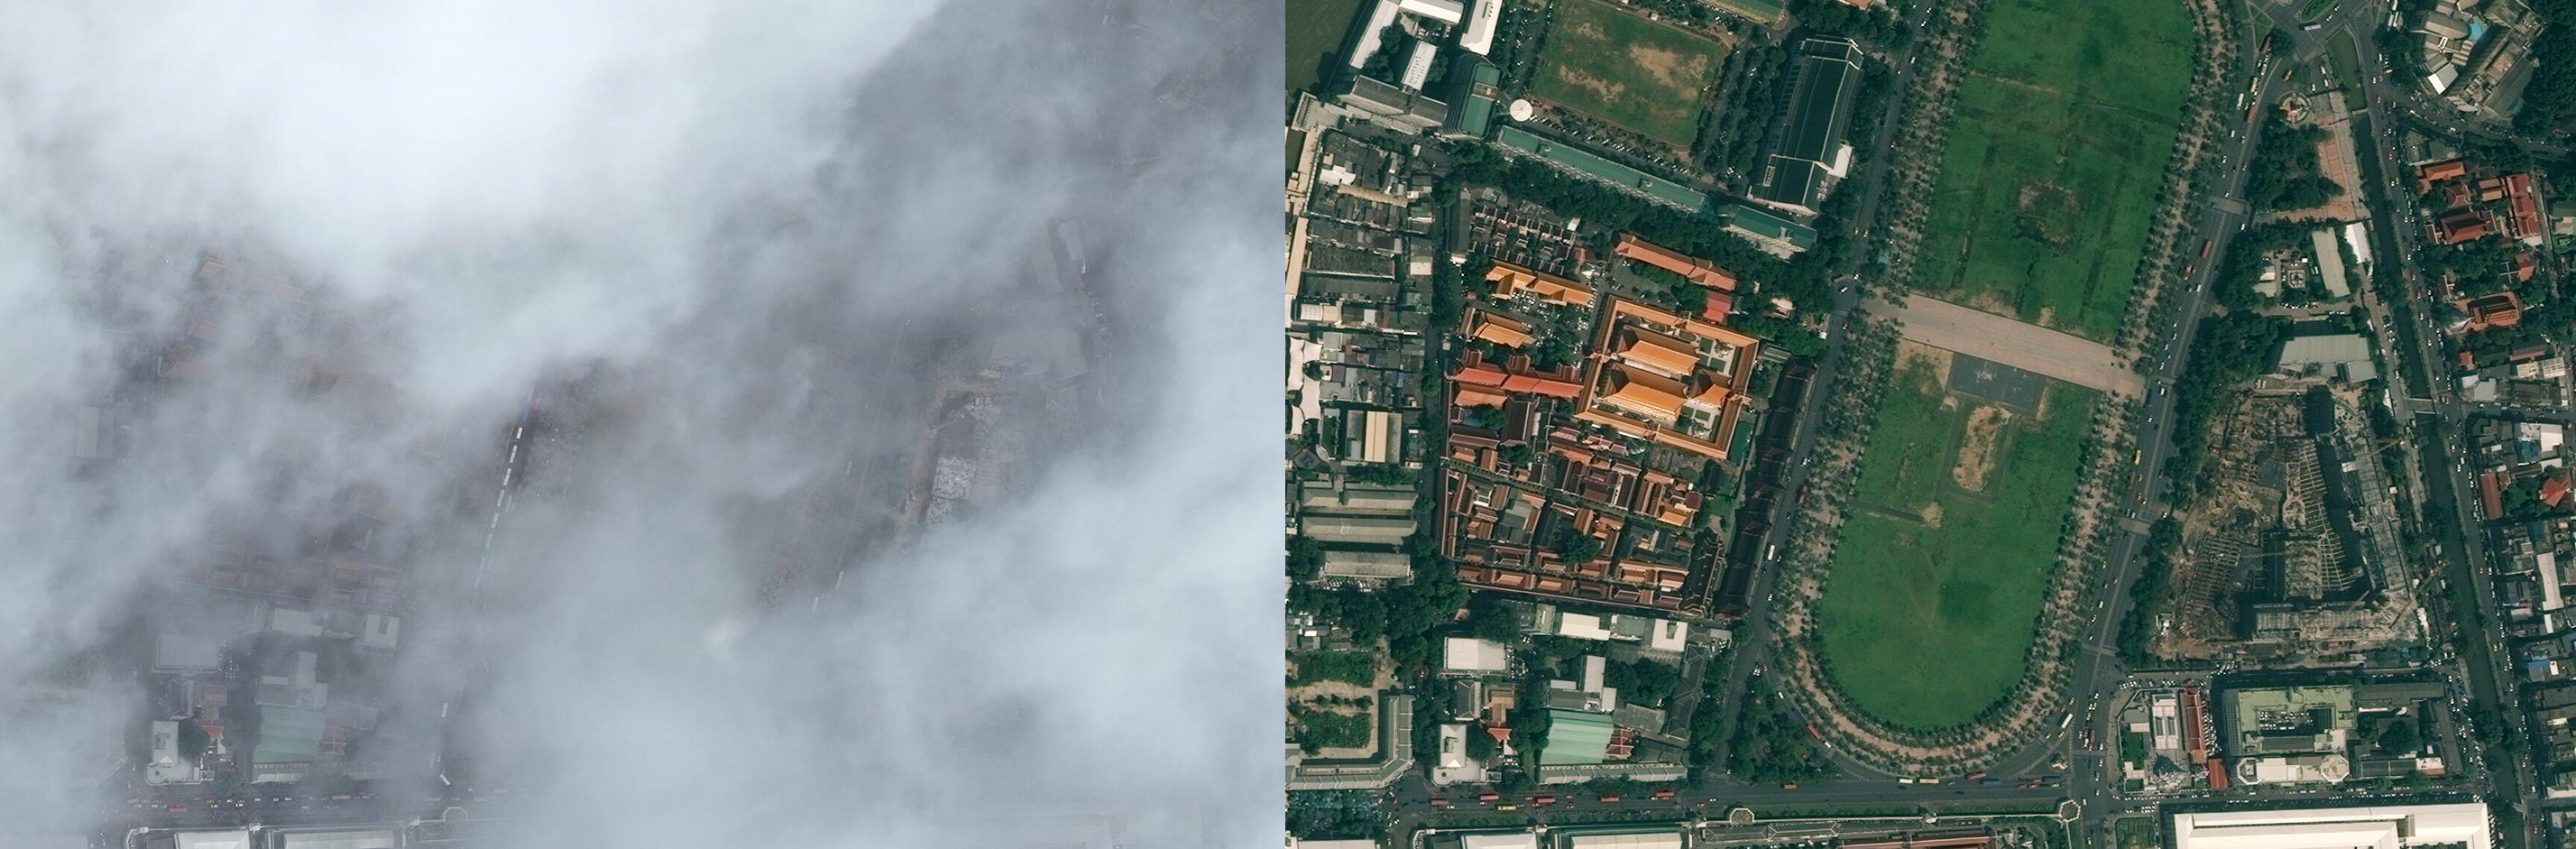 Two images of the same area of Bangkok. The image on the left is hard to identify based on cloud cover, while the image on the right is clear of cloud cover or weather.